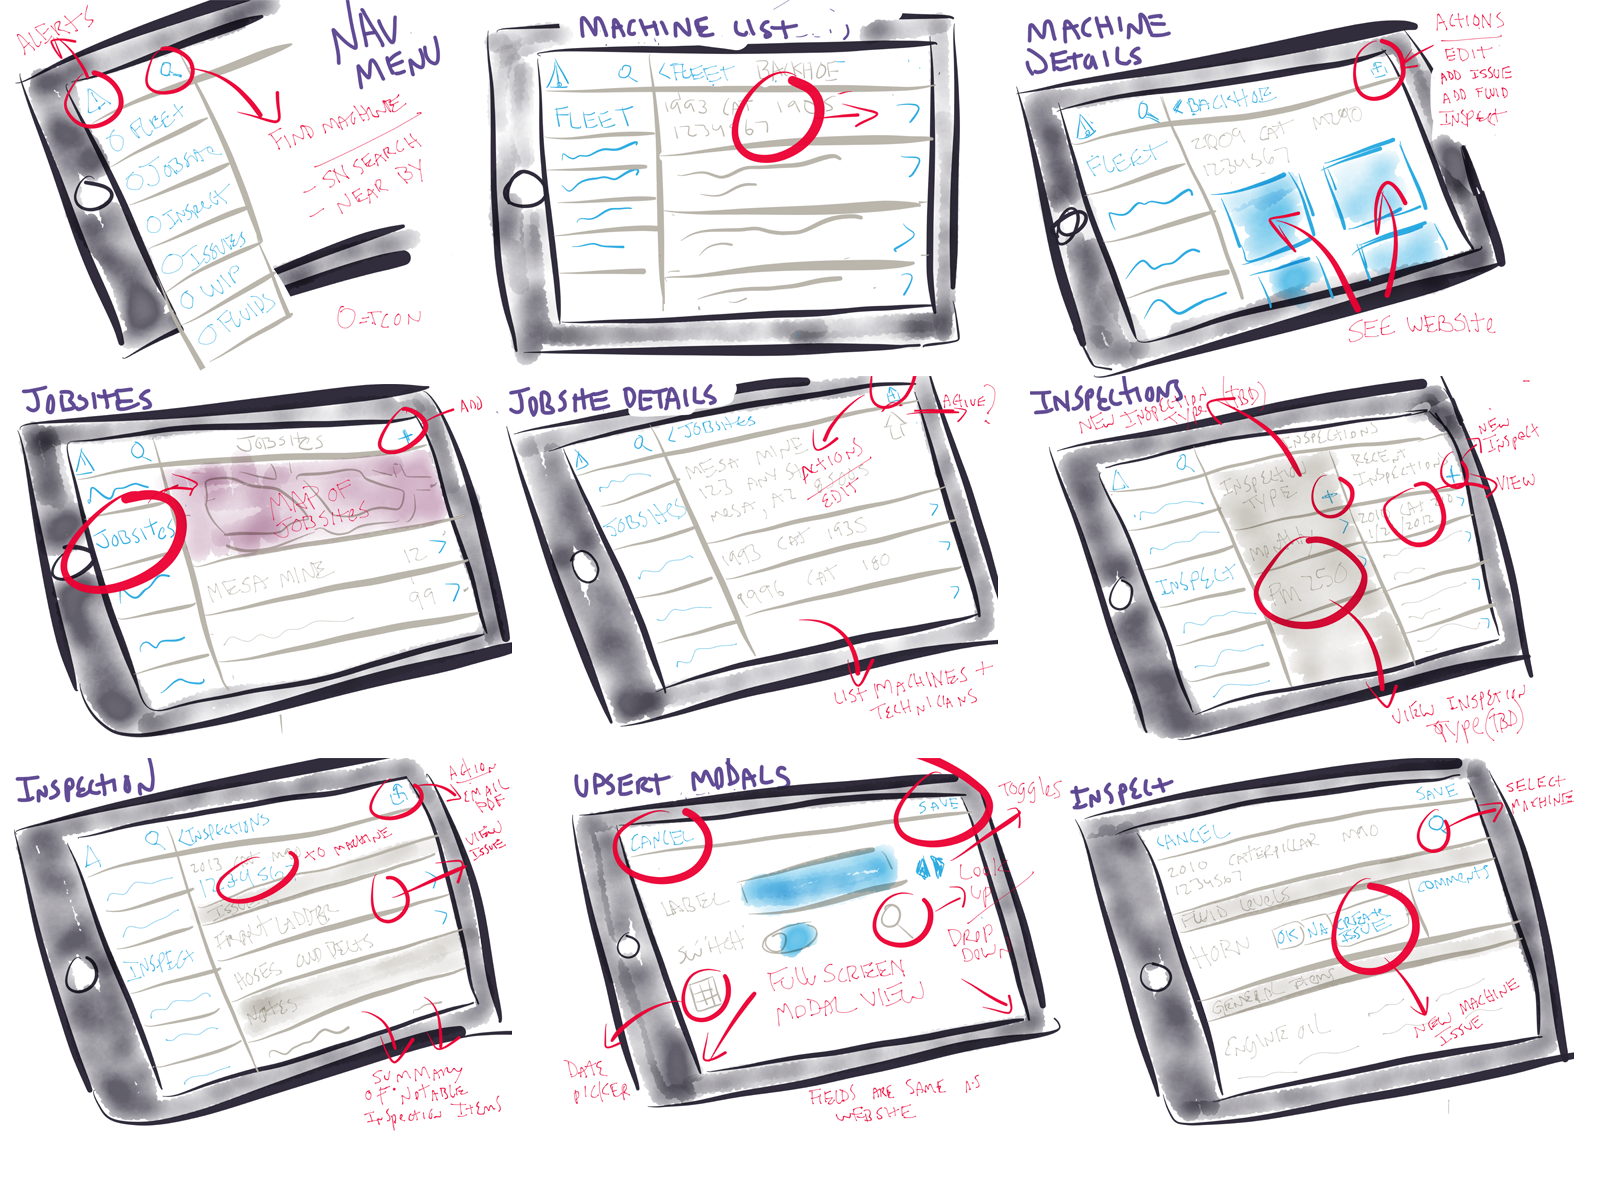 A few examples of quick sketches to flush out the basic design concept.